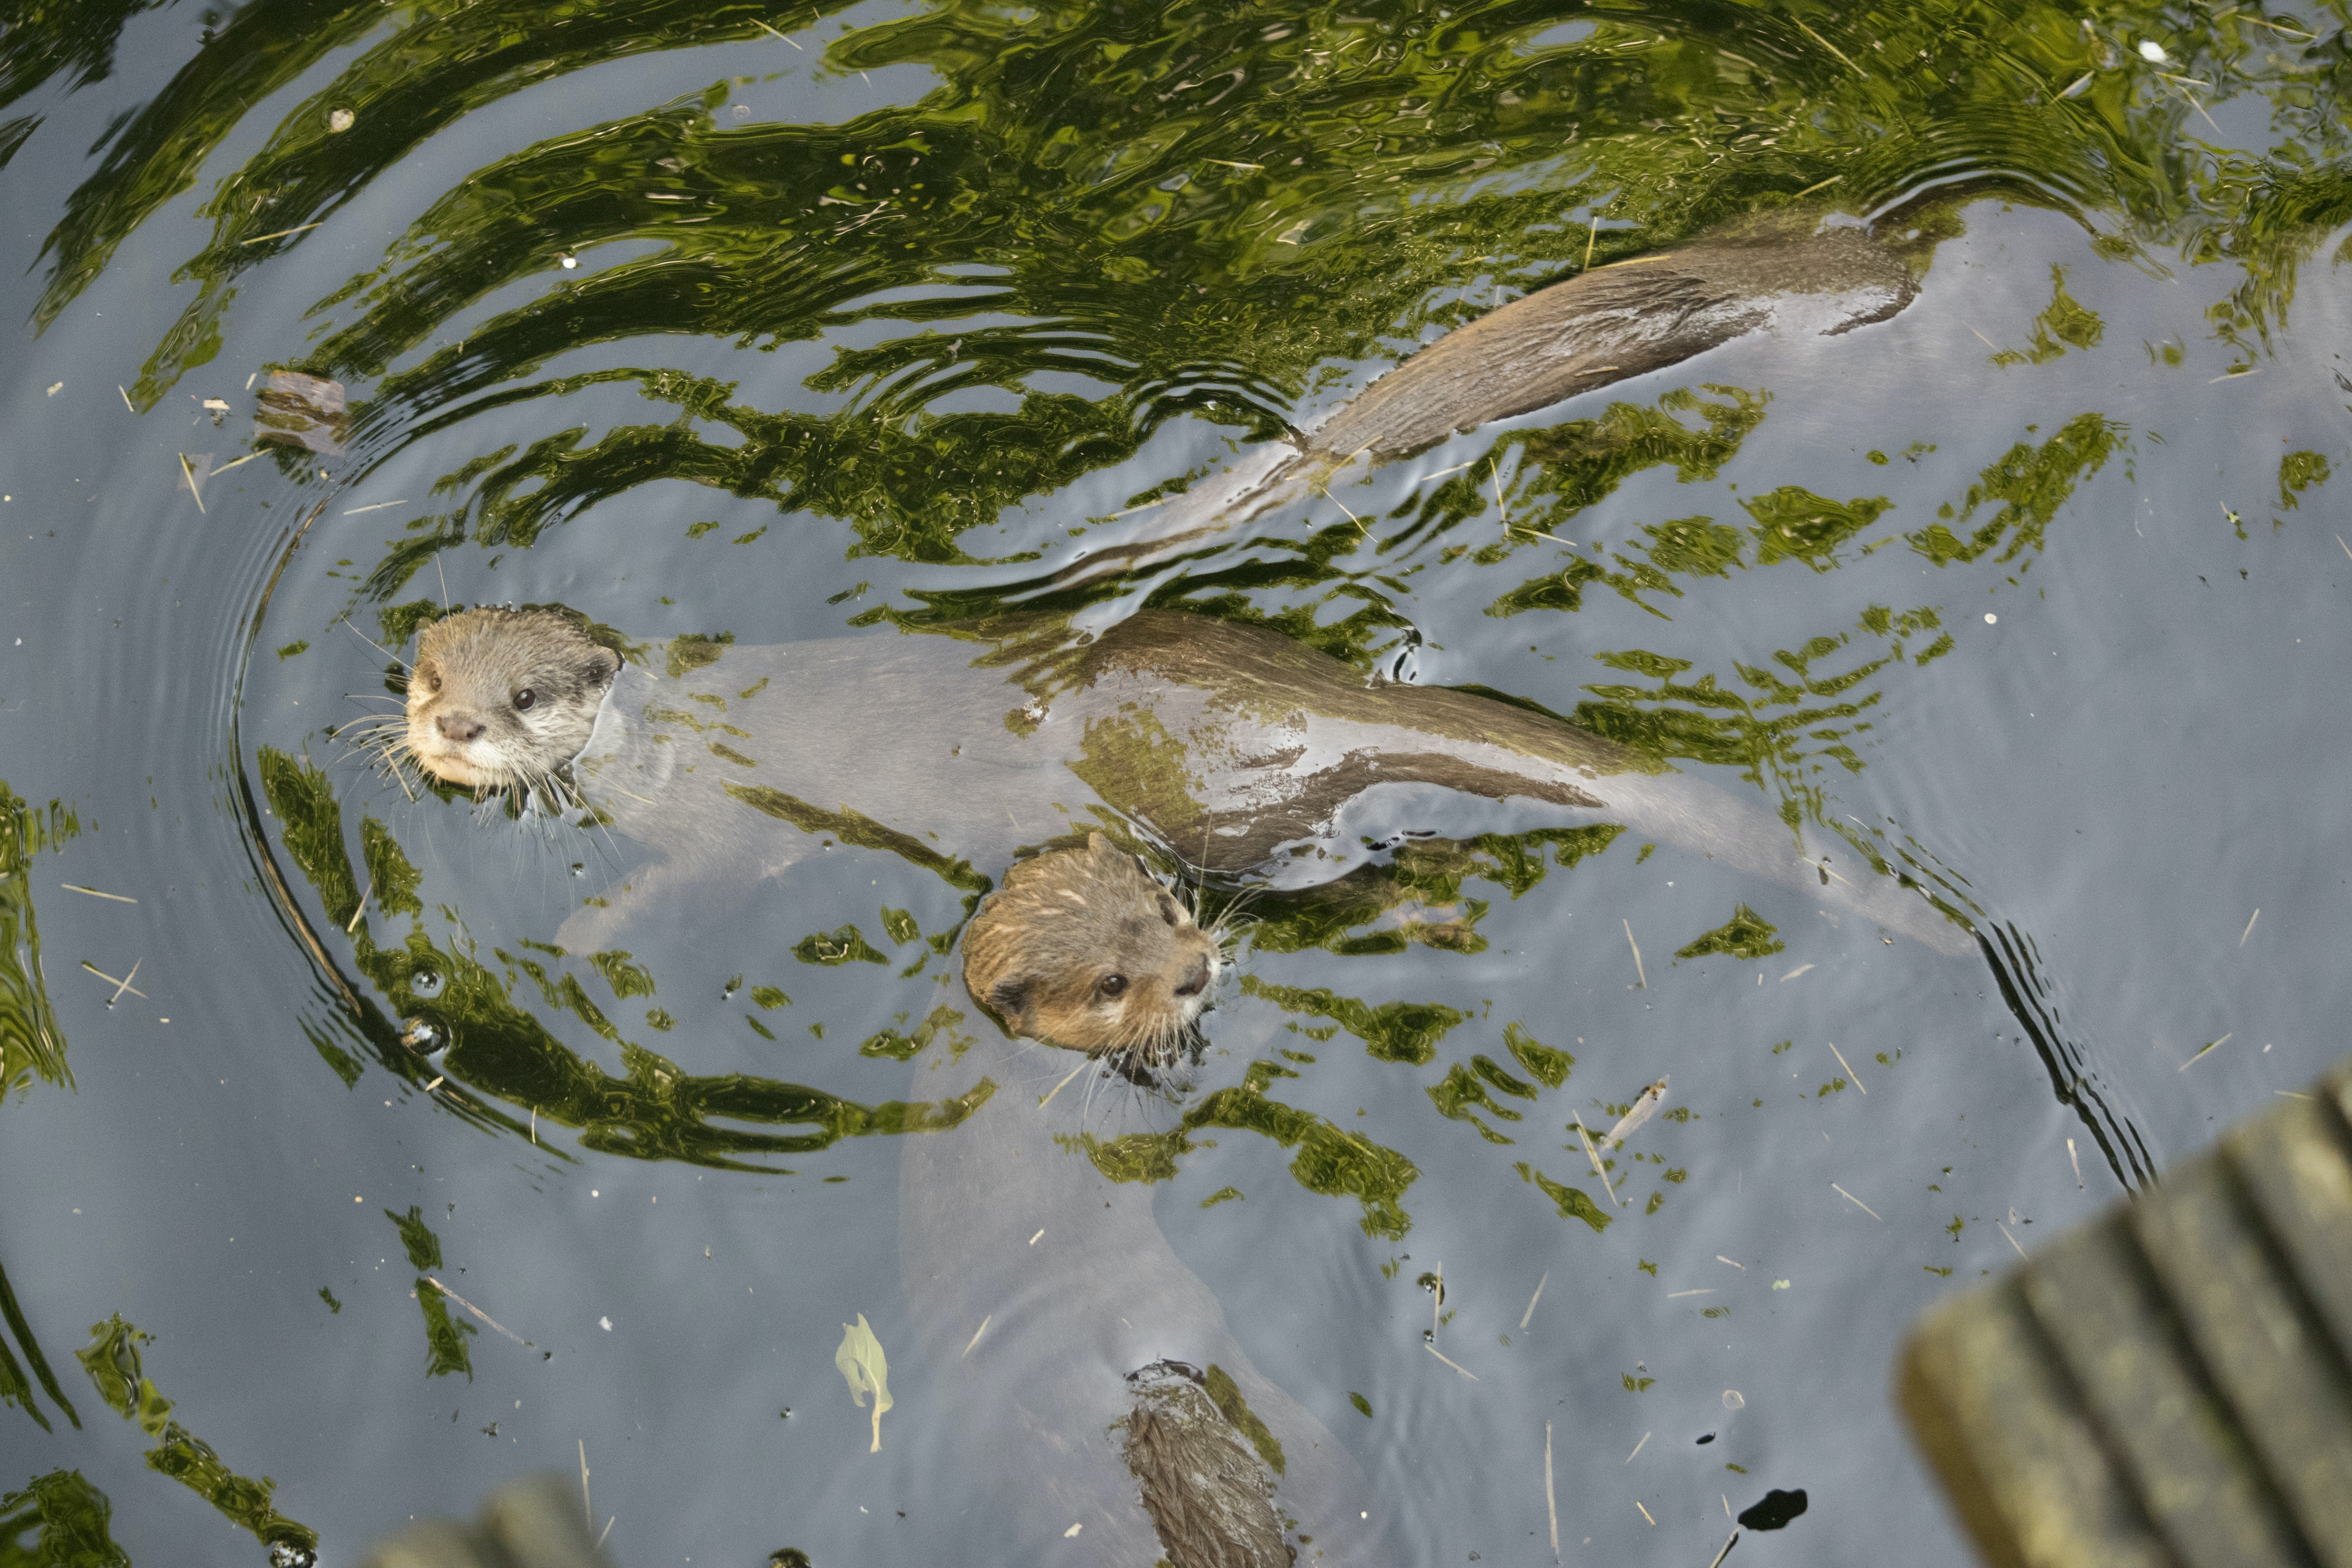 three brown otters soaked on water